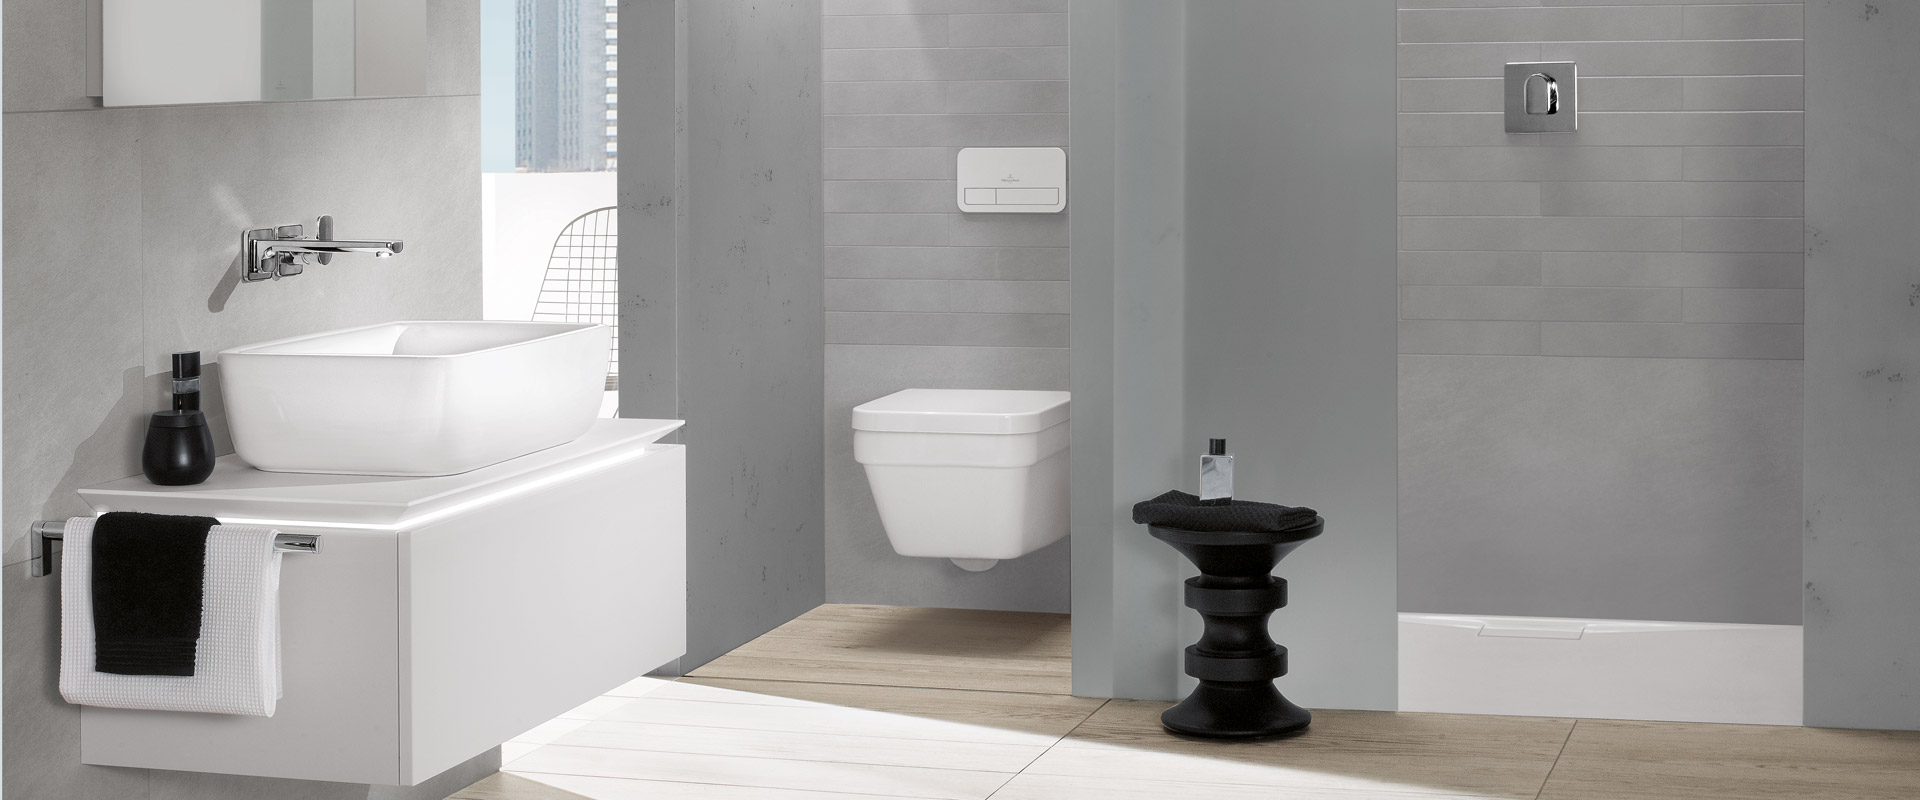 Kollektion architectura von villeroy boch zeitloses for Bad und wc design